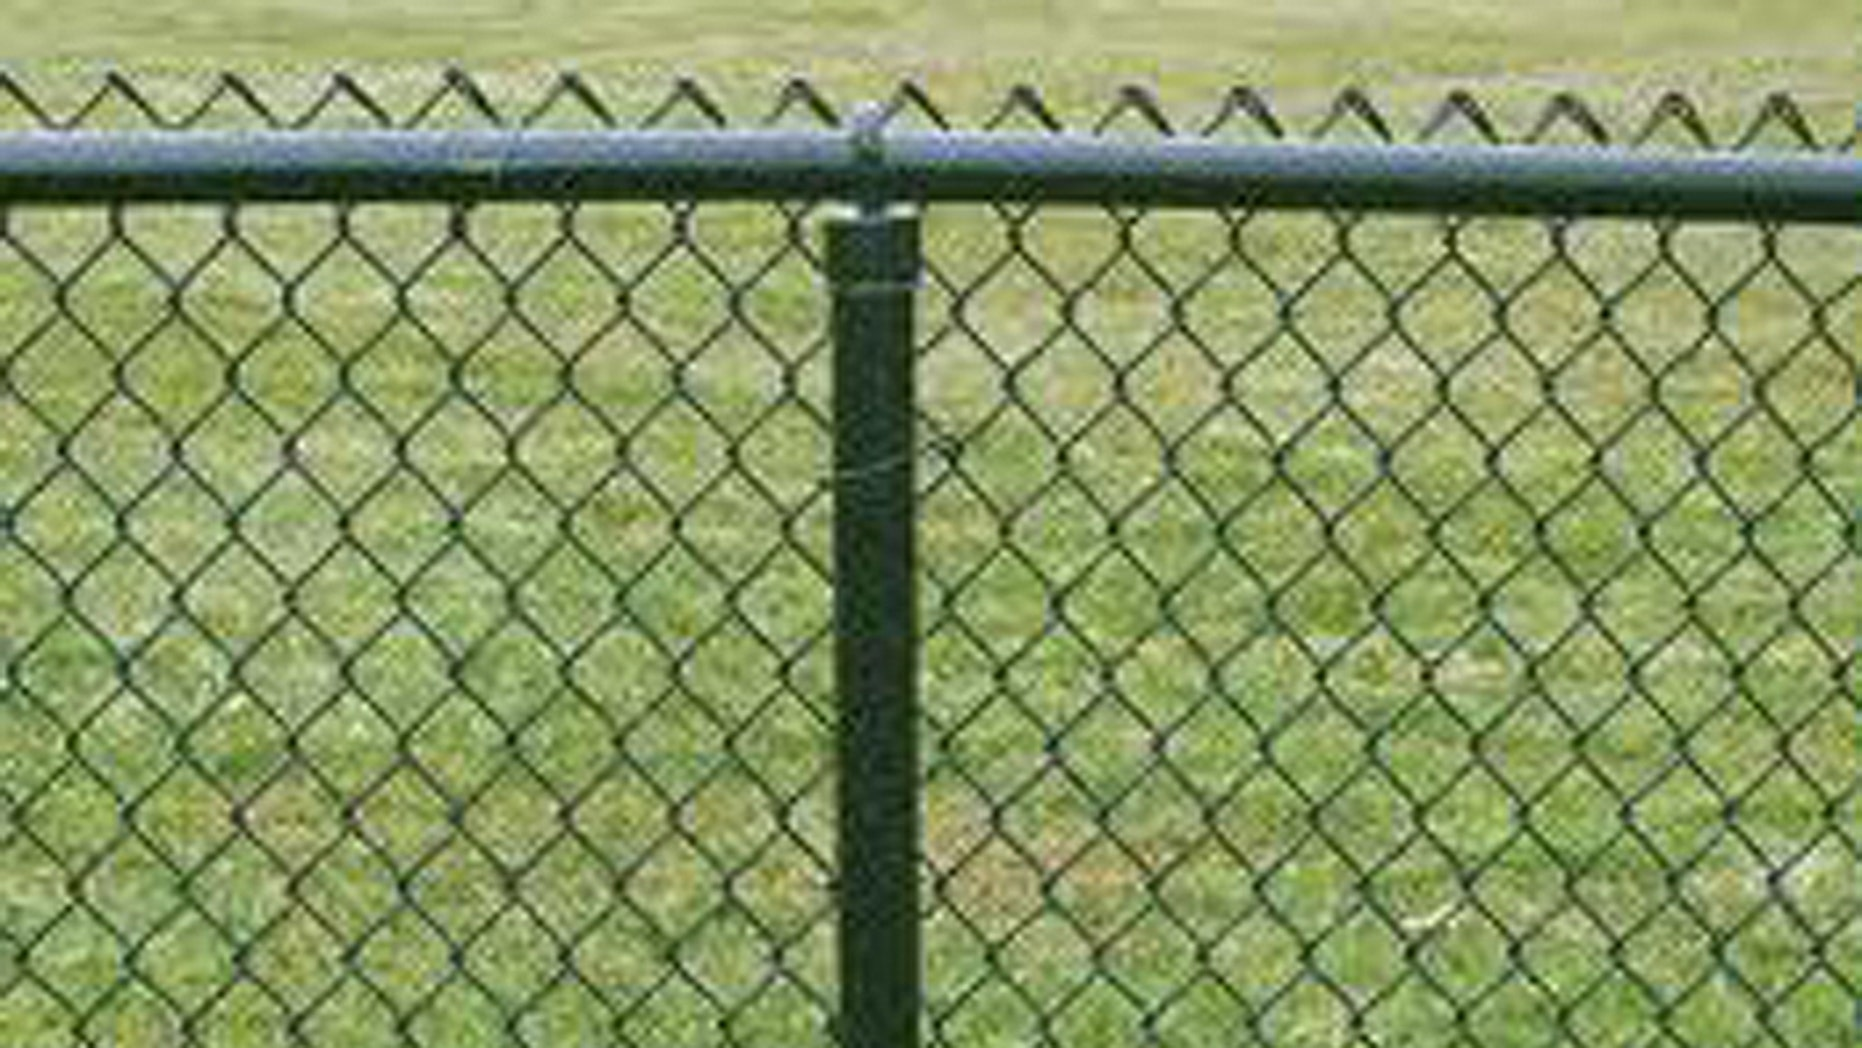 A chain link fence separates the backyards of Chris Smith and the registered sex offender who propositioned his 10-year-old daughter.